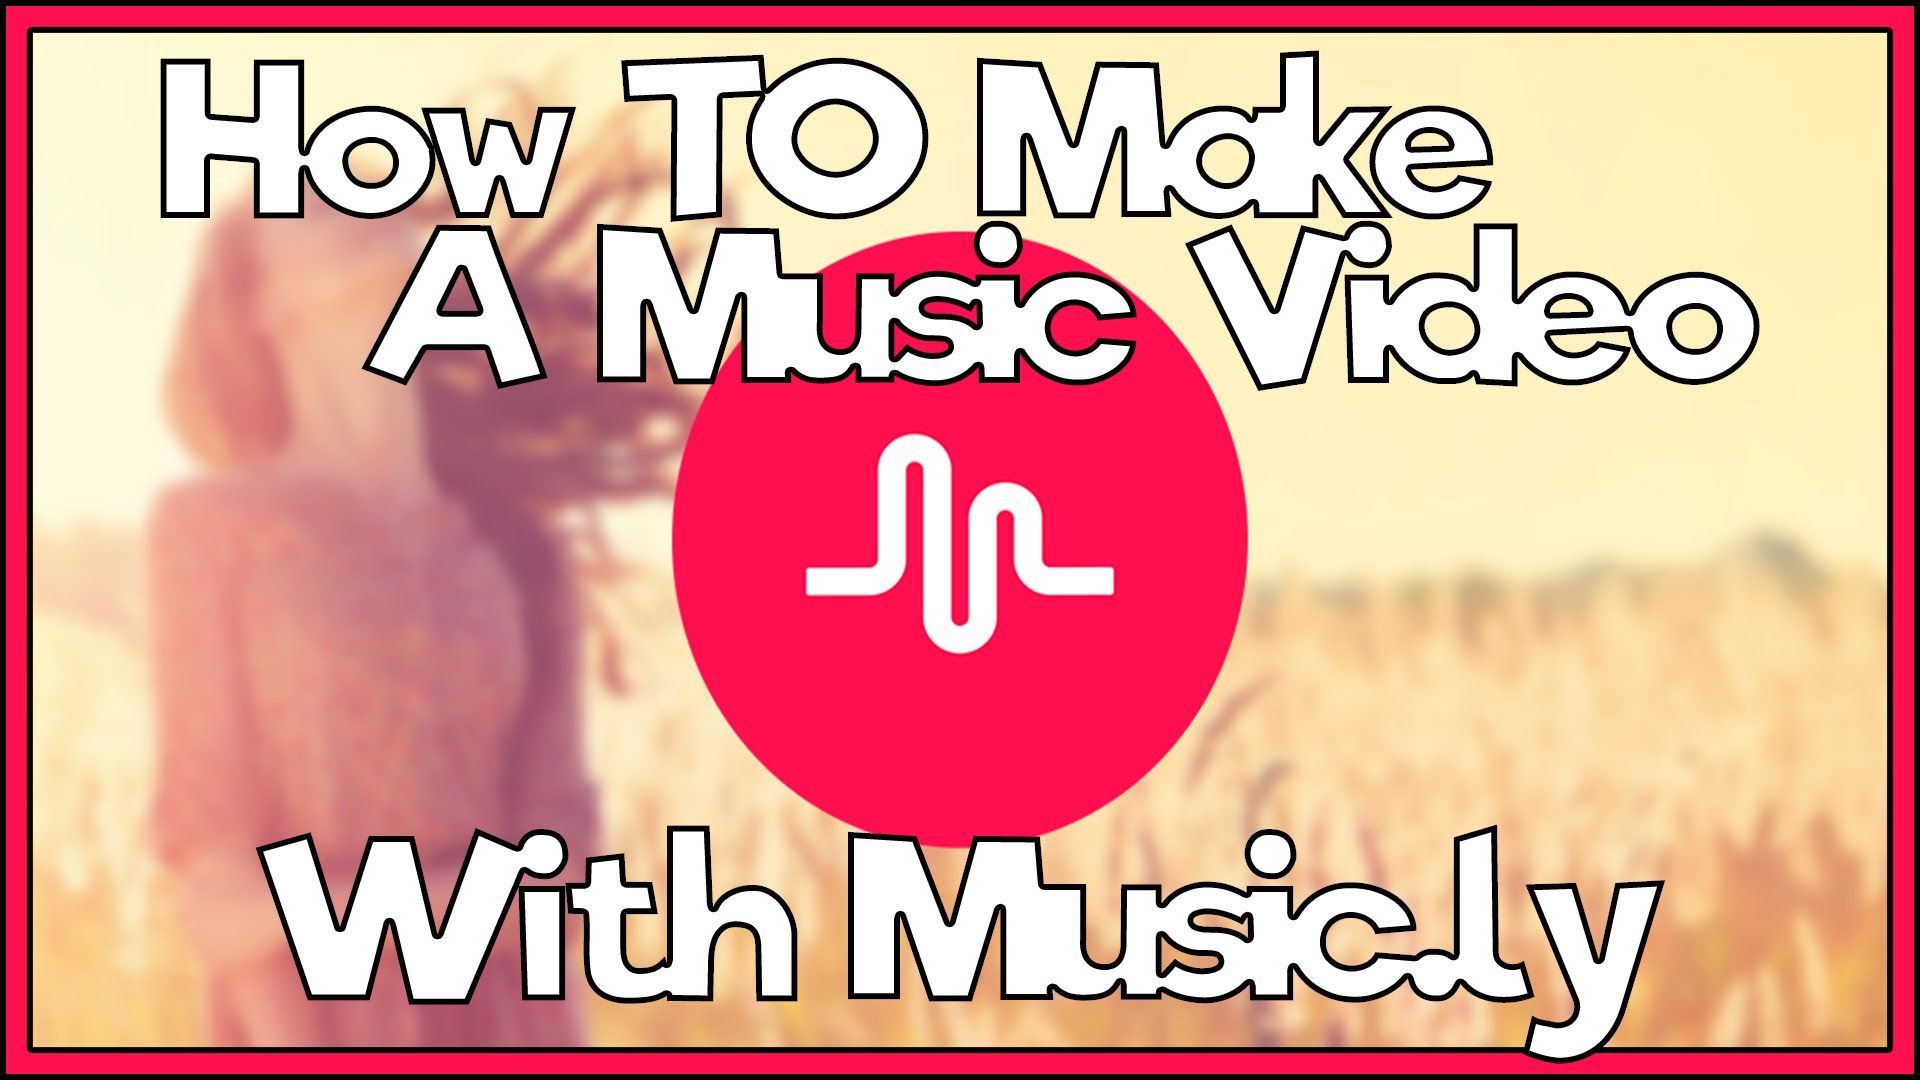 How to make a video with music